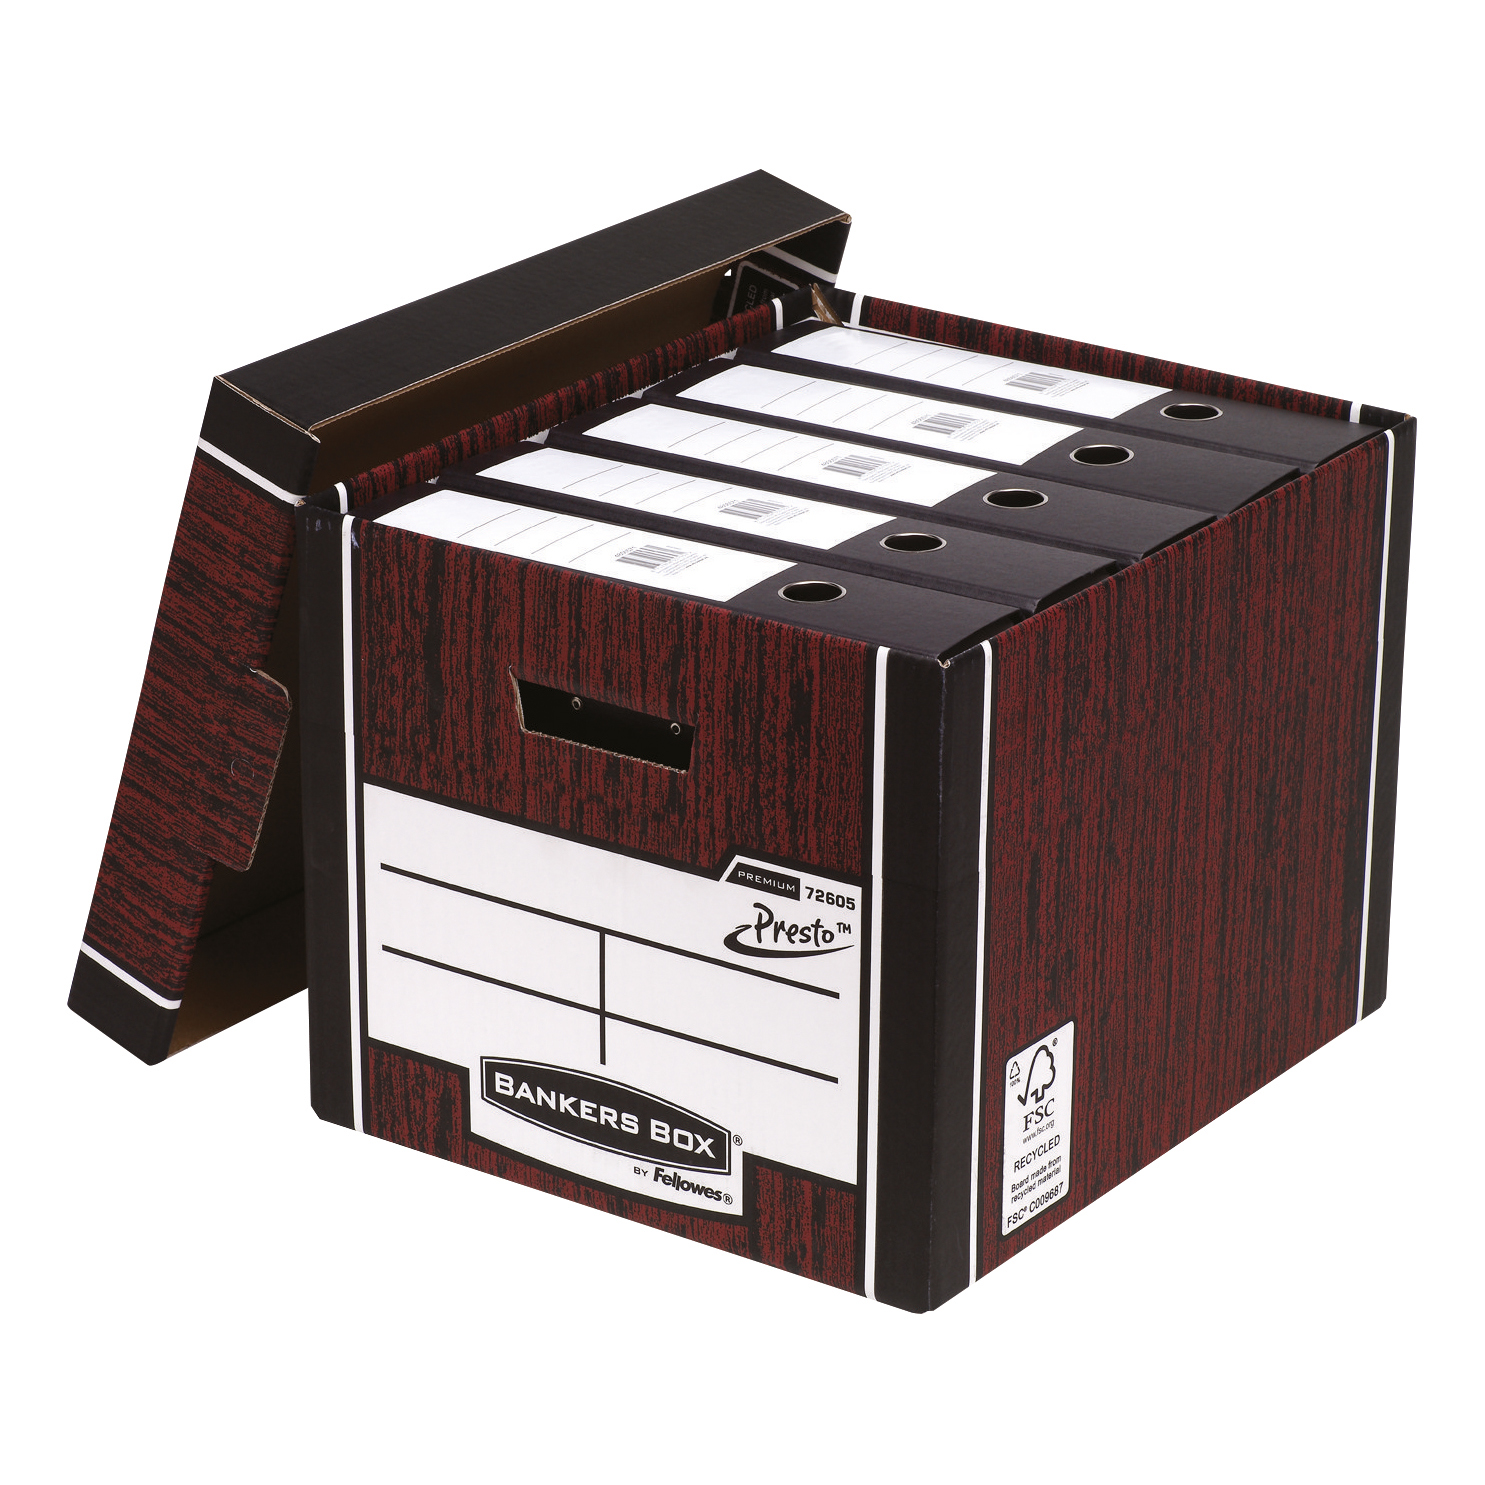 Bankers Box Premium Storage Box Presto Tall Woodgrain FSC Ref 7260503 Pack 12 12 for the price of 10